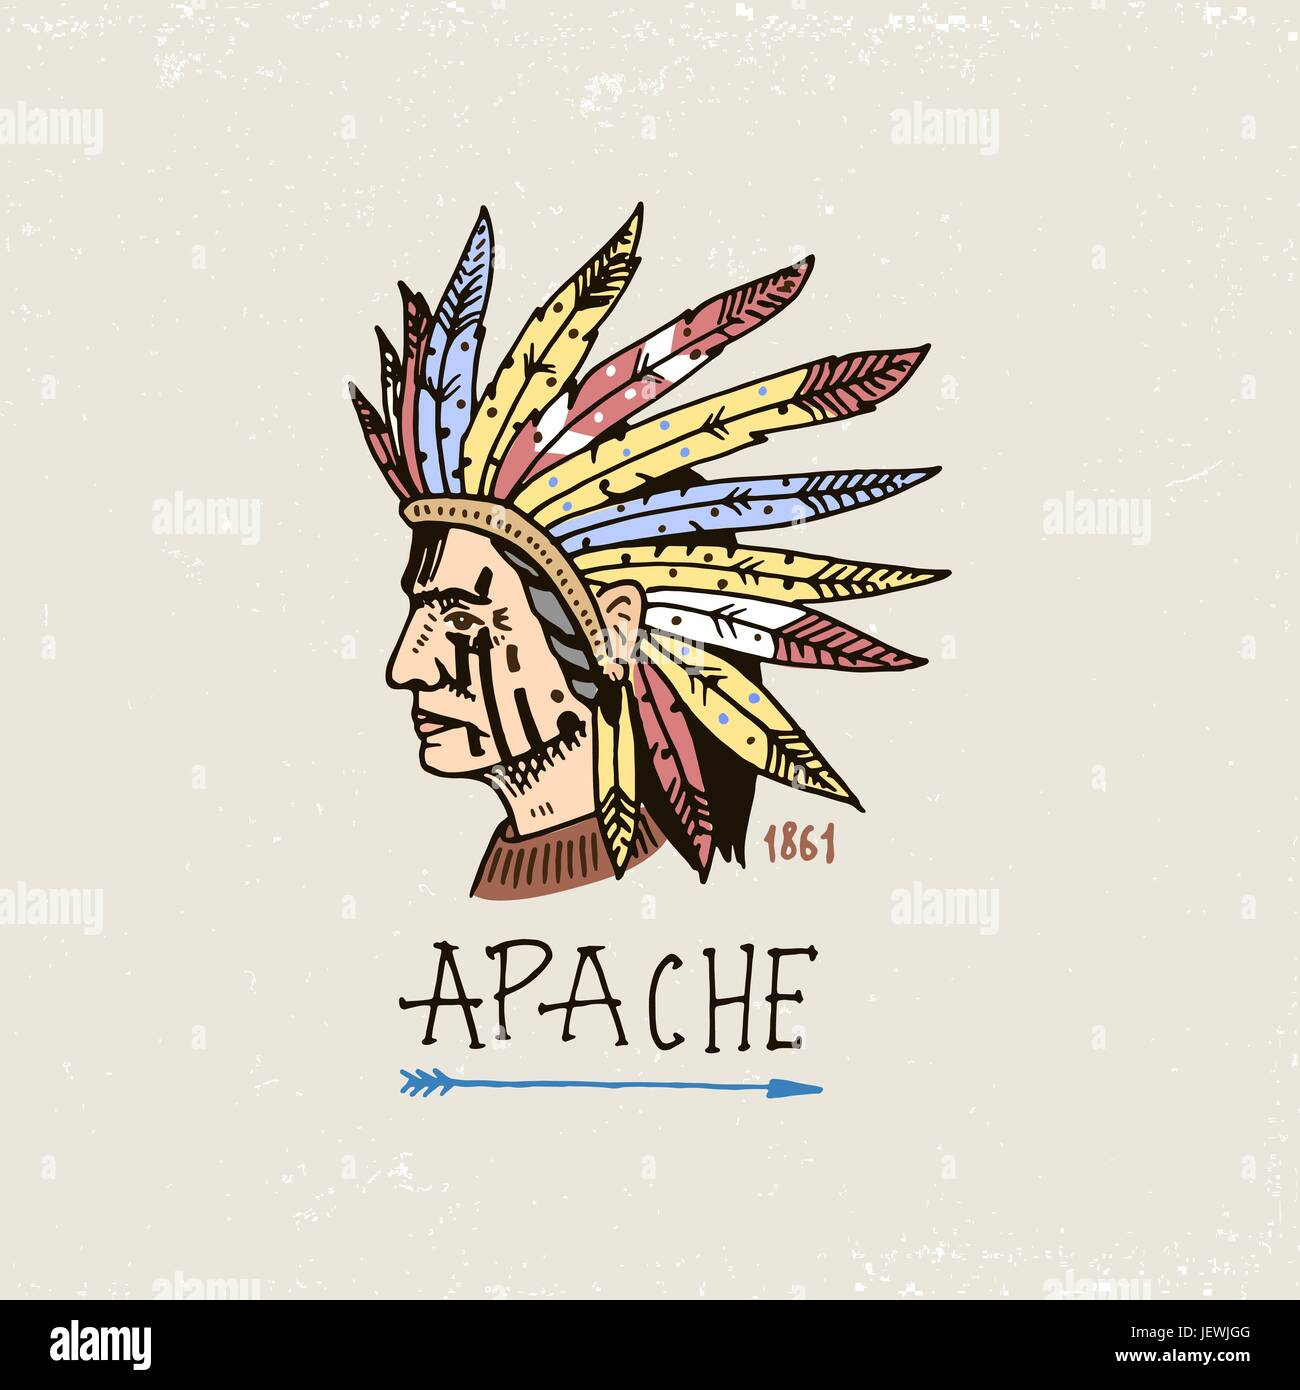 set of engraved vintage, hand drawn, old, labels or badges for indian or native american. face with feathers, comanche. - Stock Image